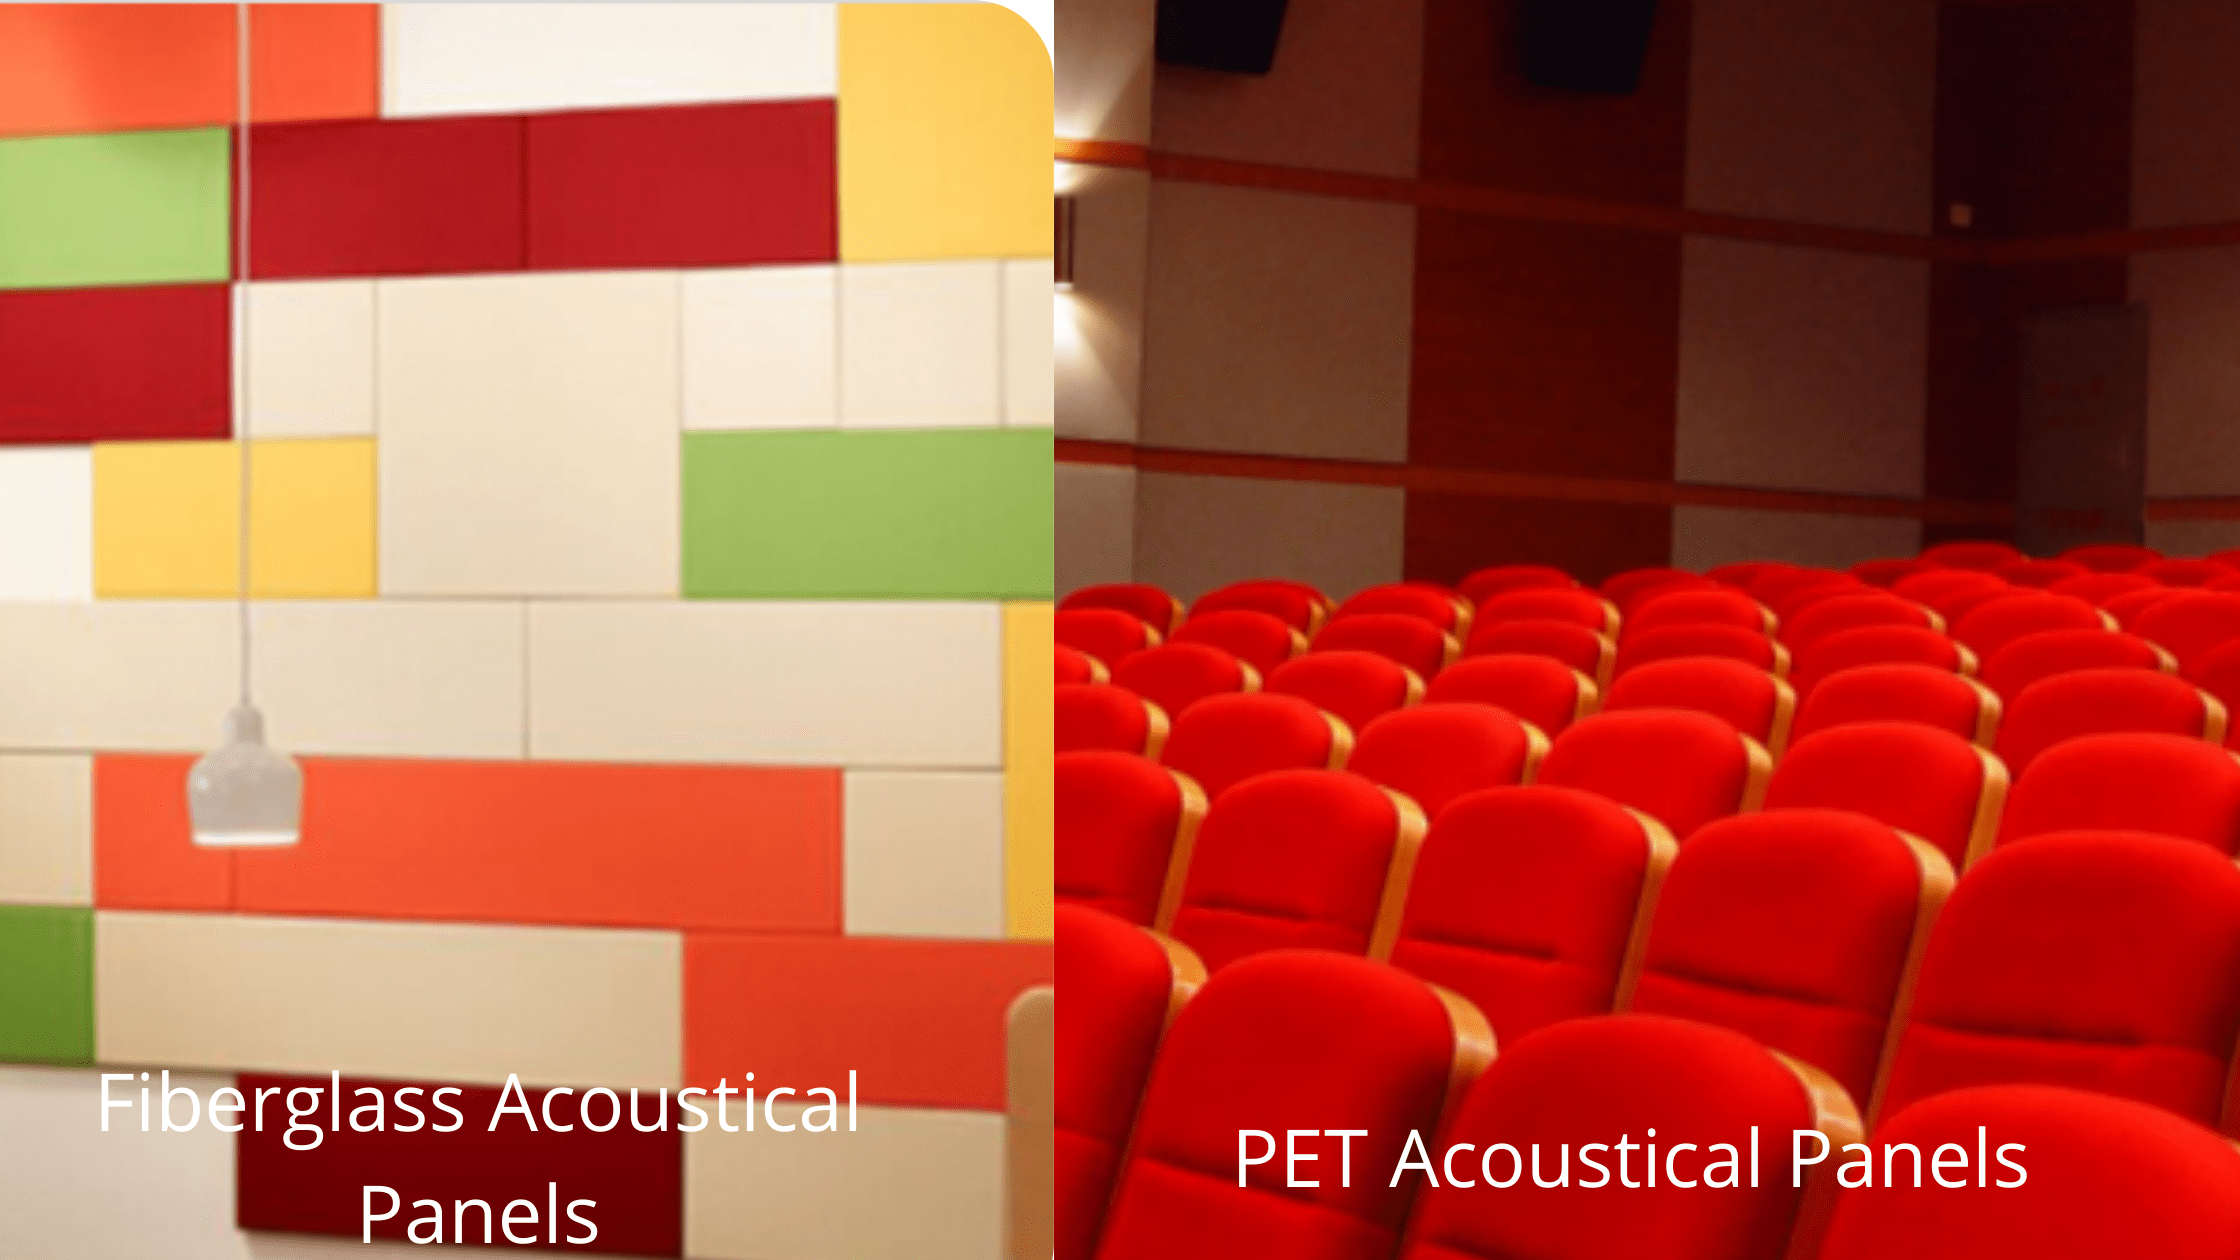 Difference between Fiberglass Acoustical Panels and PET Acoustical Panels